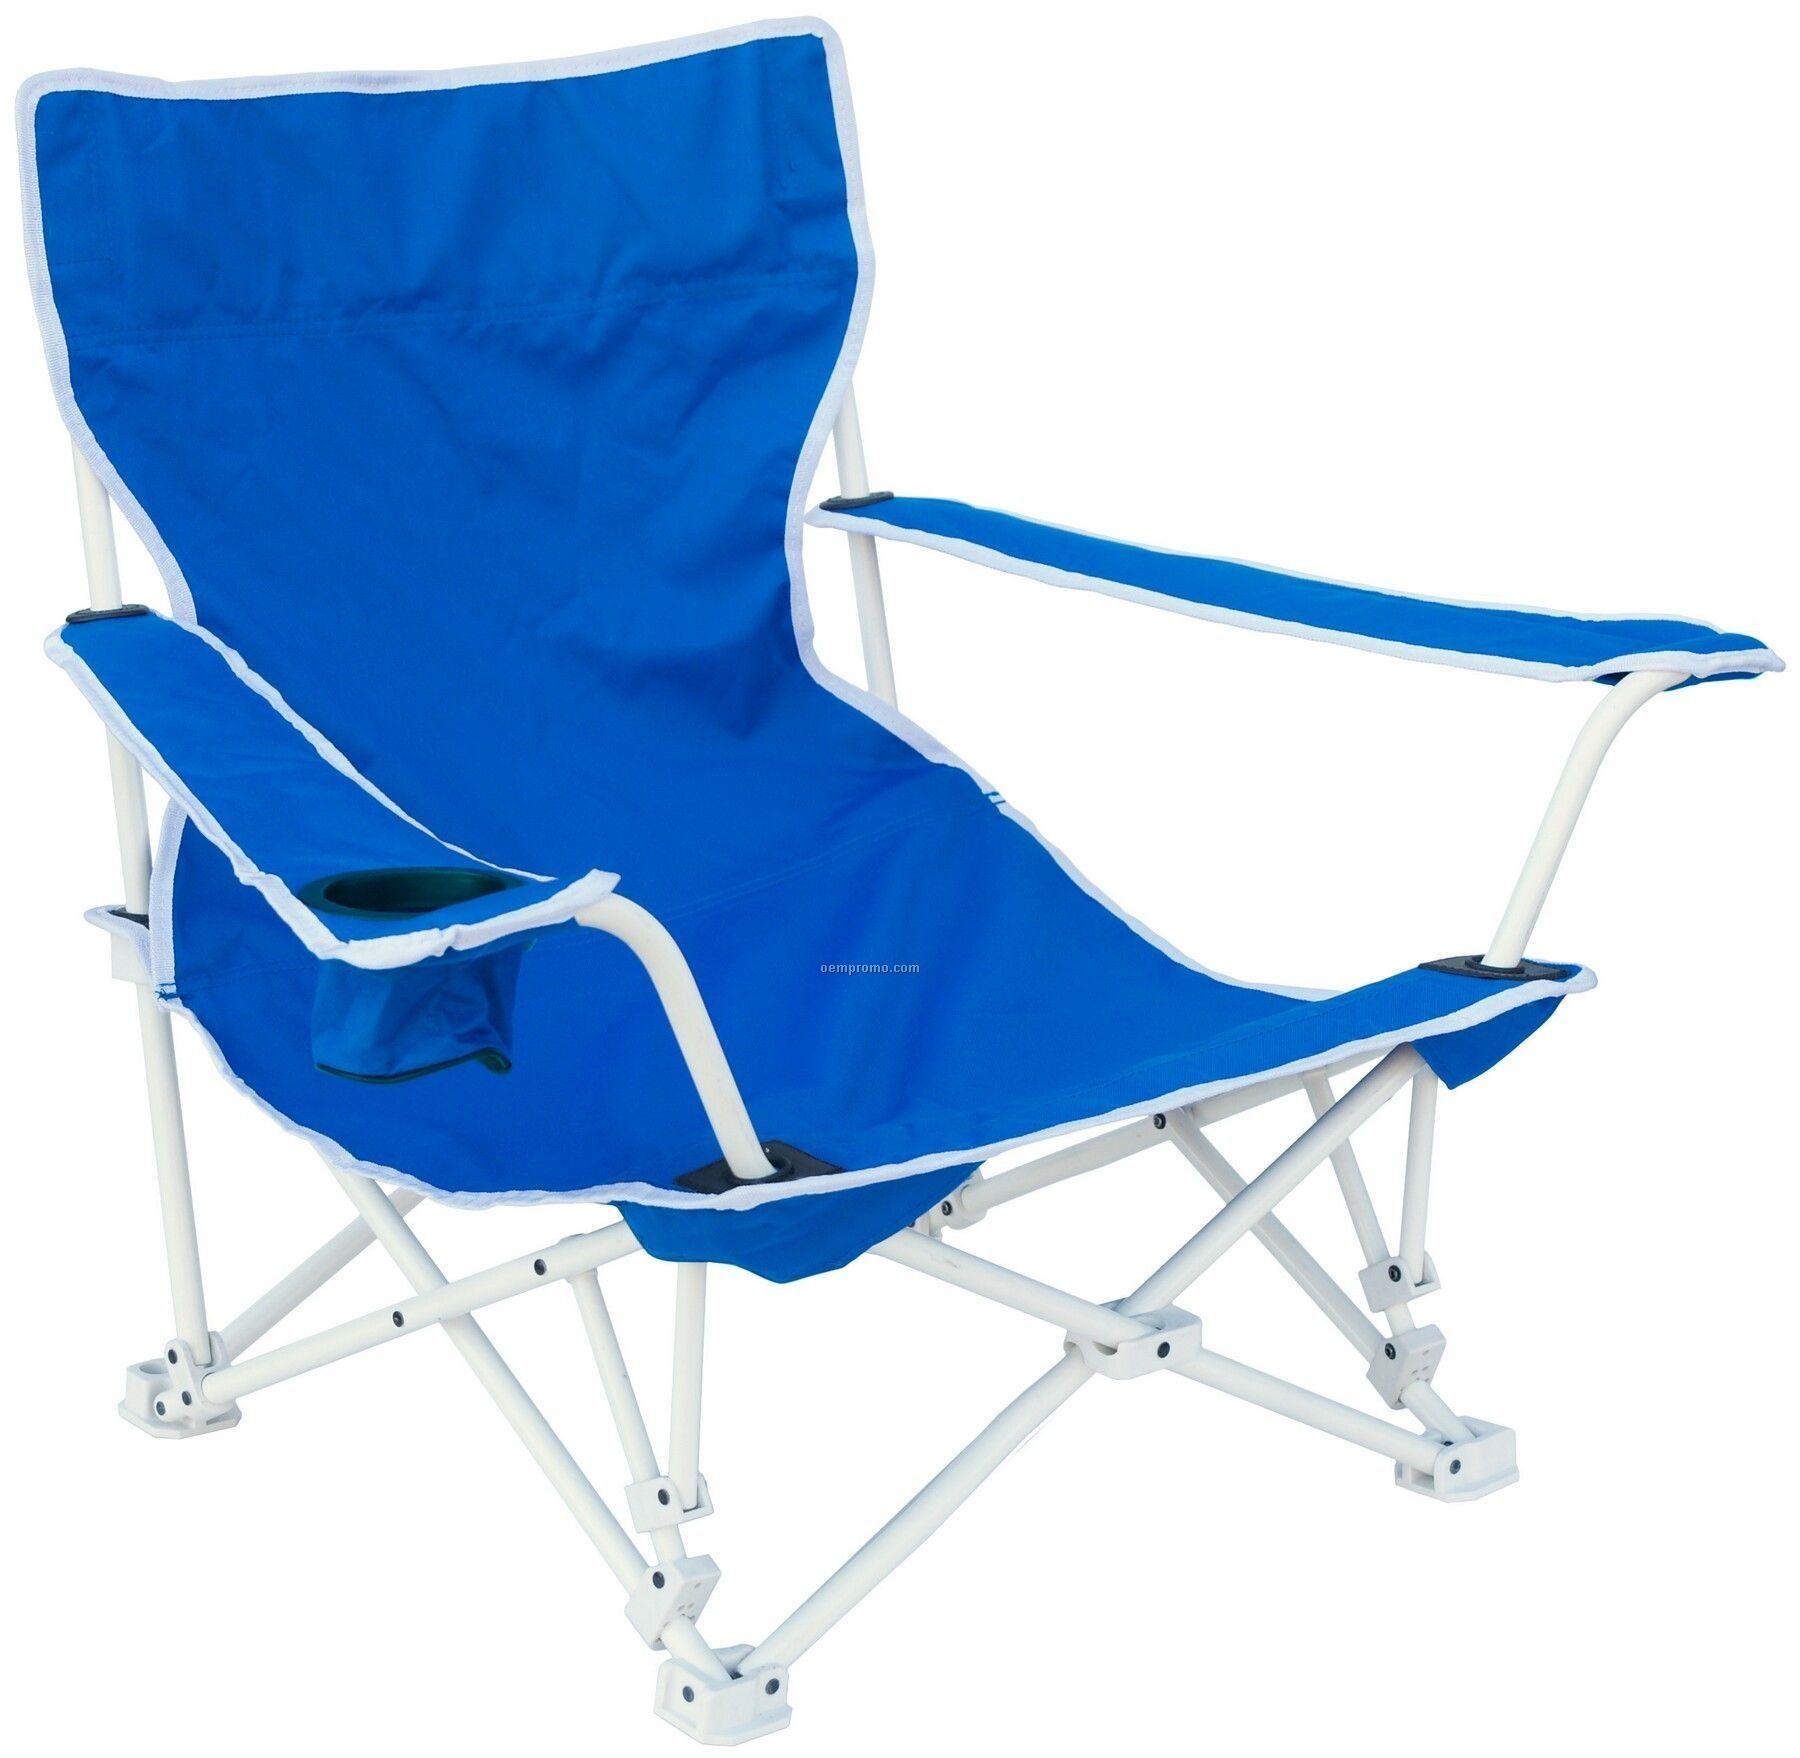 Coleman max folding chairs